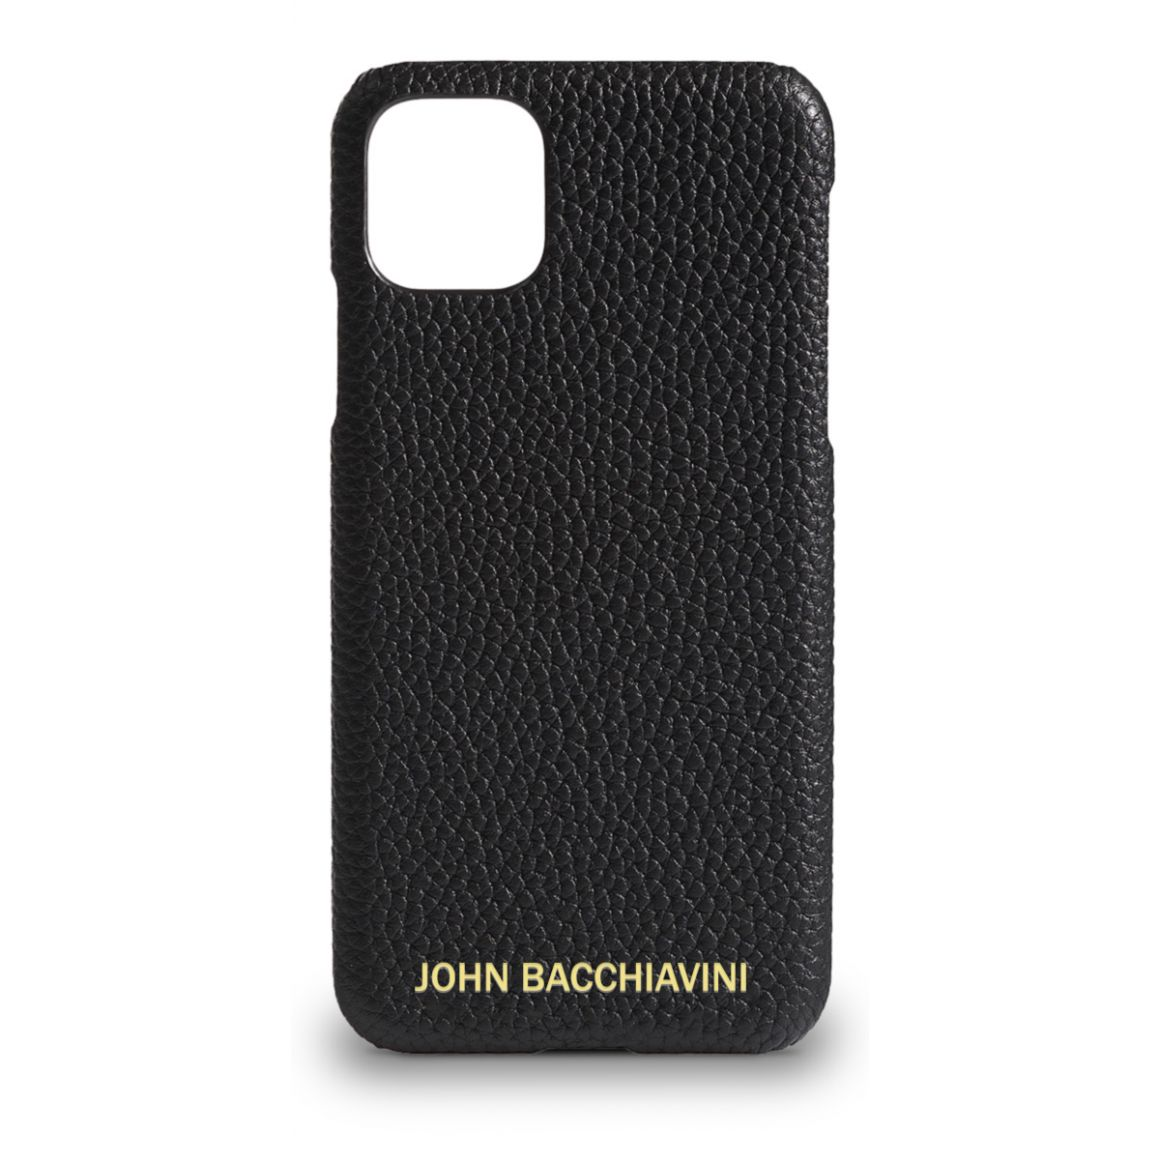 Monogram Leather Cover for iPhone 11 Pro Max Personalized All Black iPhone 11 Pro Max Leather Case Custom case with Name or Initials